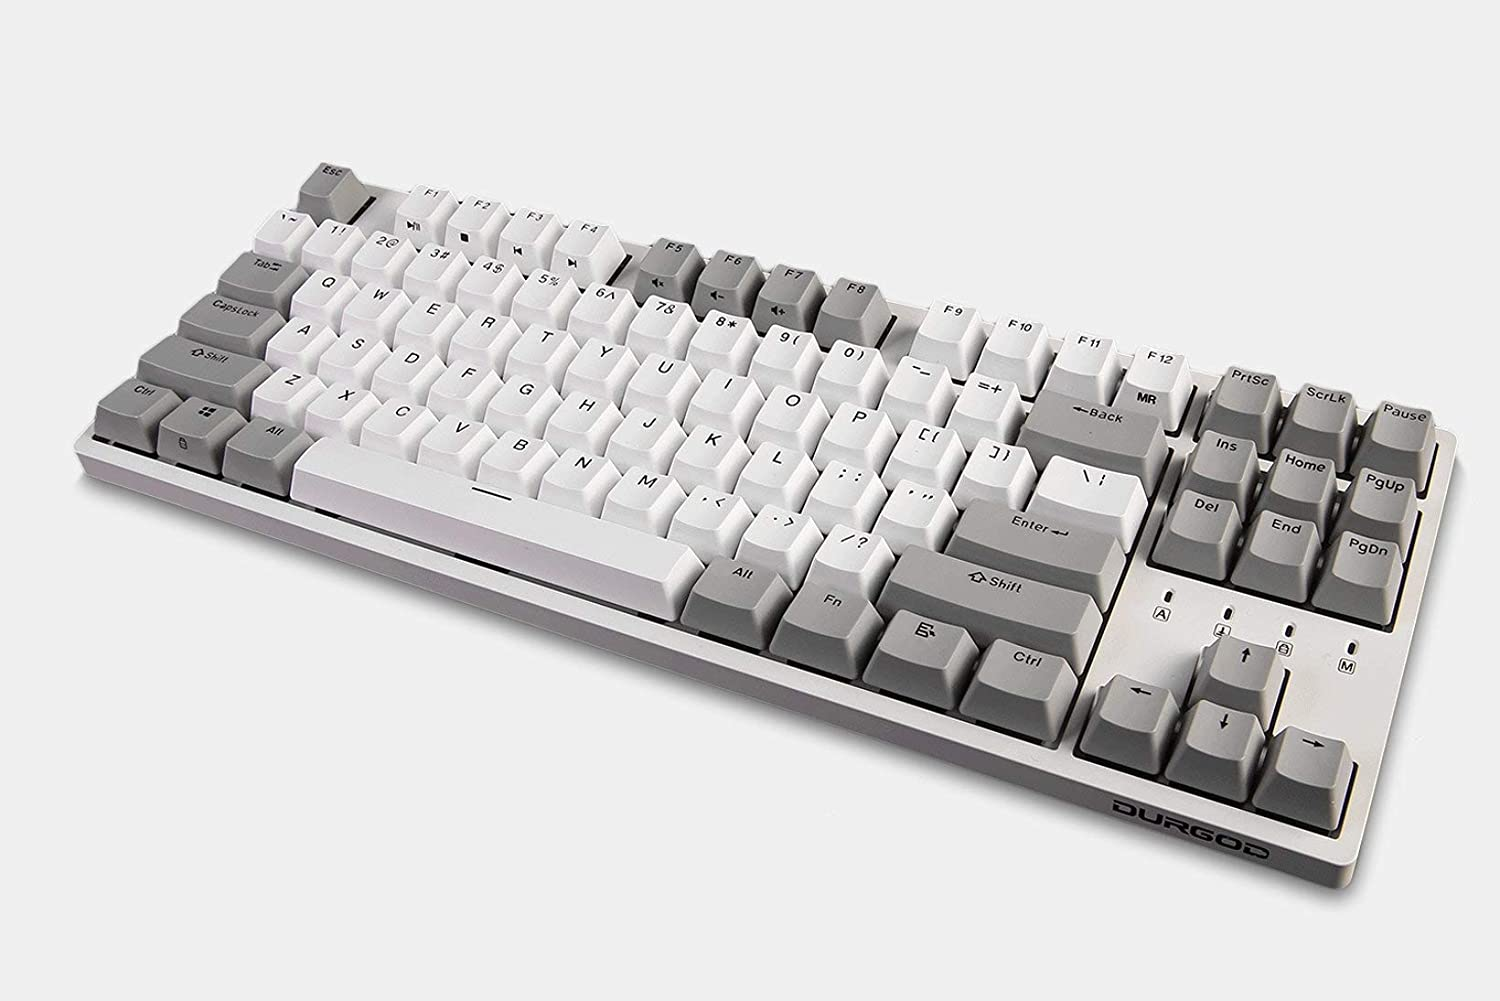 Durgod Taurus K320 TKL Mechanical Gaming Keyboard